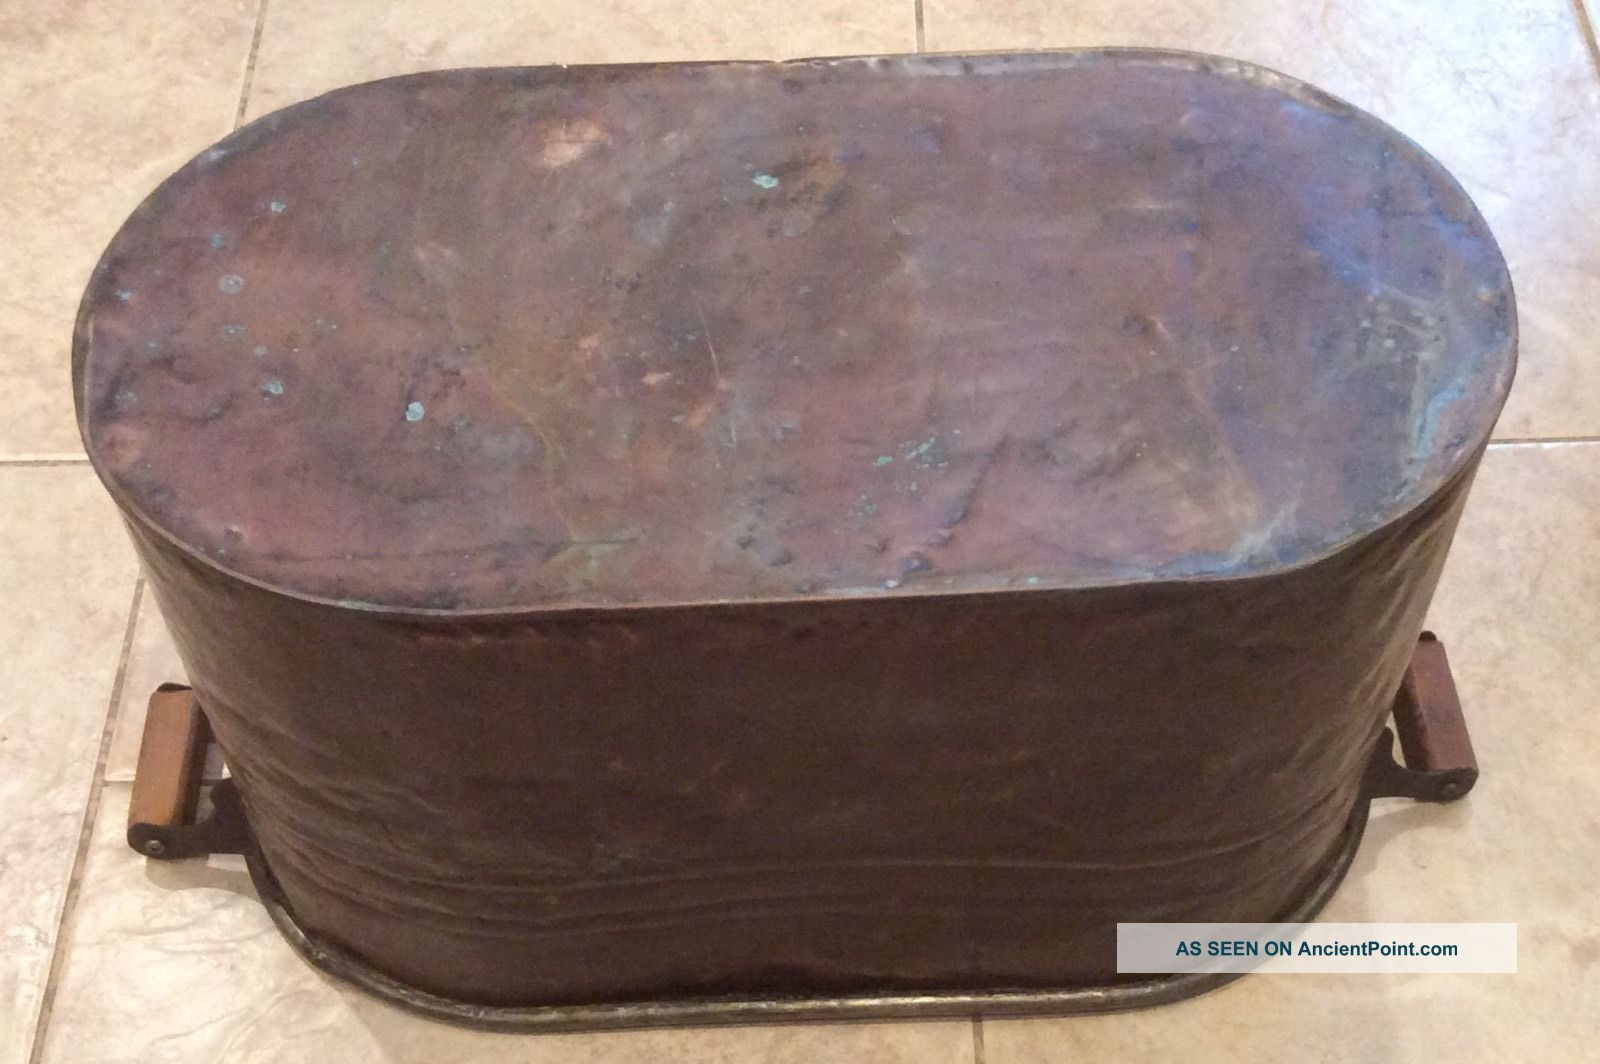 Large Wash Tub : Large Antique Copper Wash Tub Boiler W/wooden Handles Other Antique ...